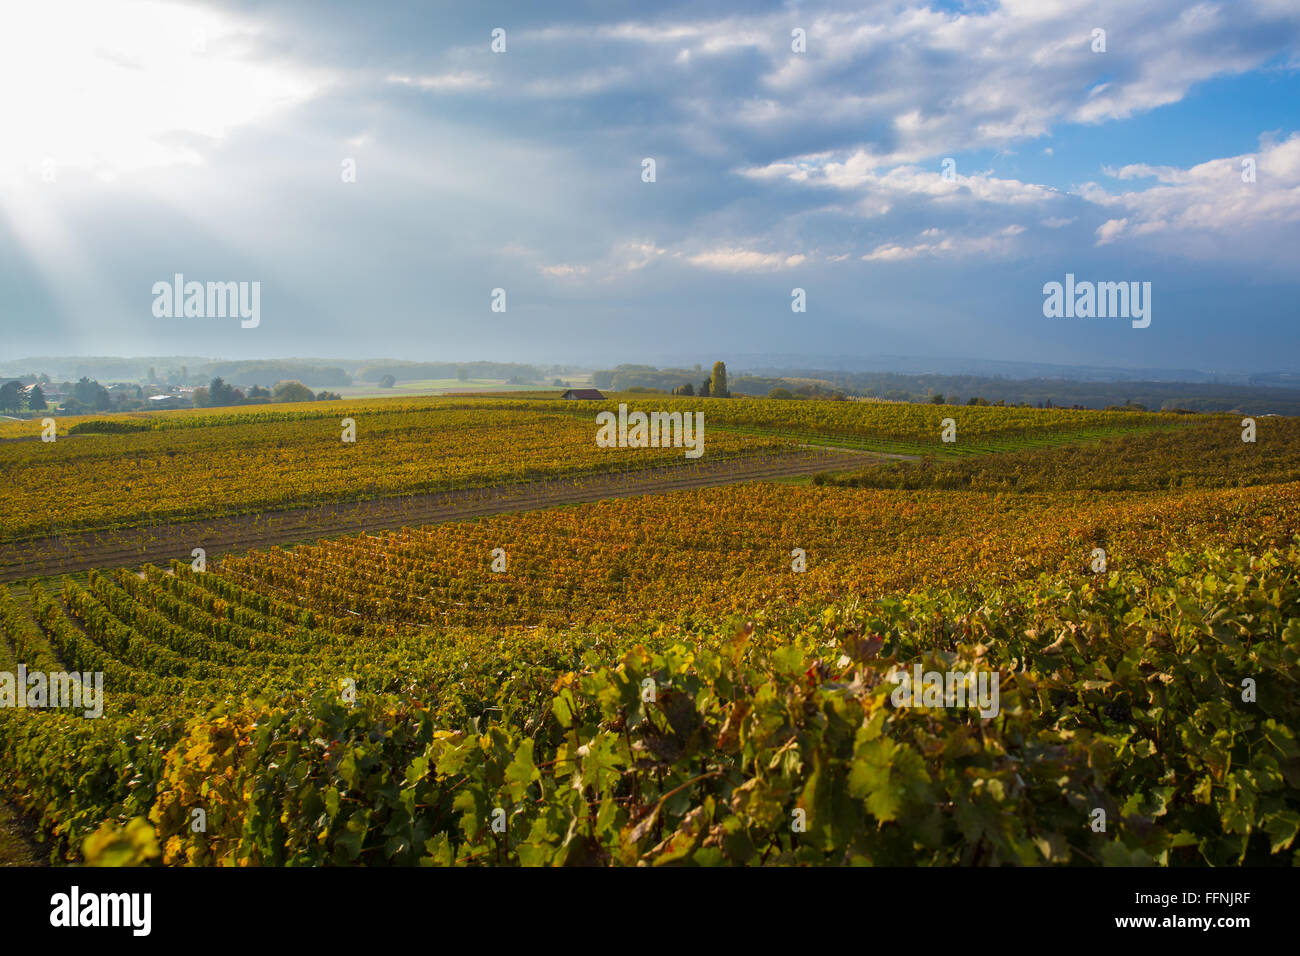 Colorful vineyards near Geneva, Switzerland, dramatic sky in the background with sun rays piercing through the clouds - Stock Image